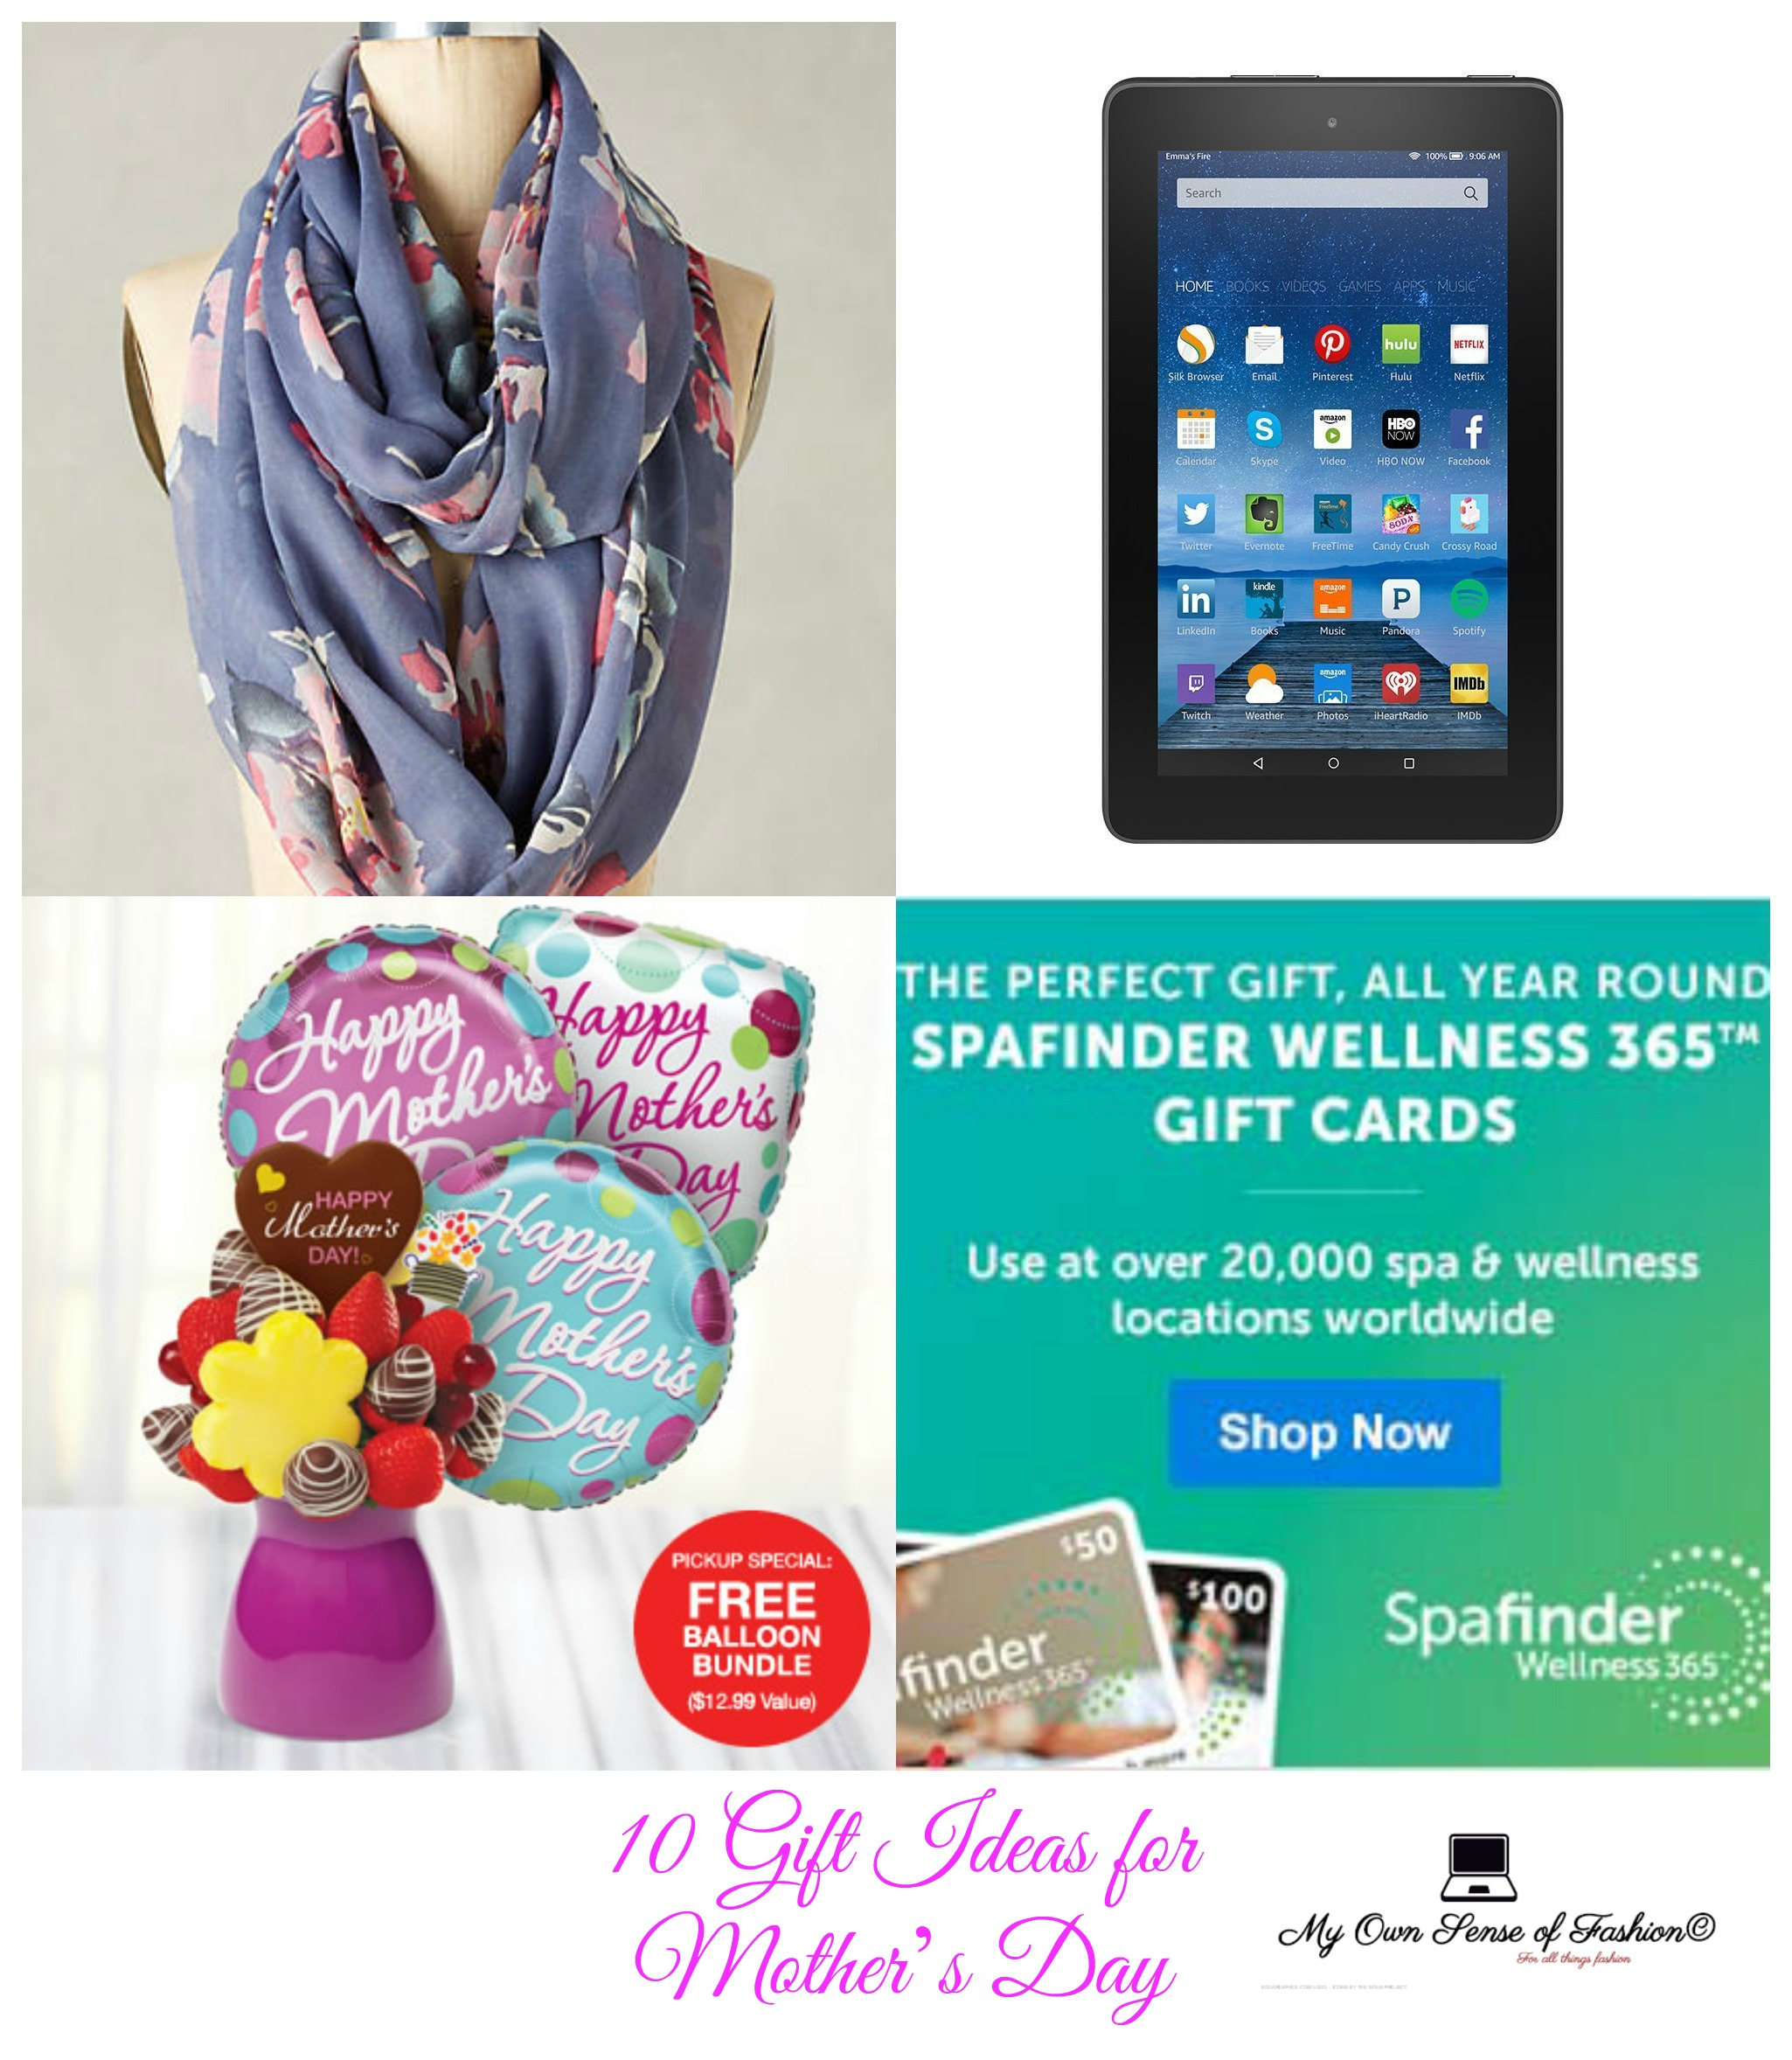 10 Gift Ideas for Mother's Day (Images)